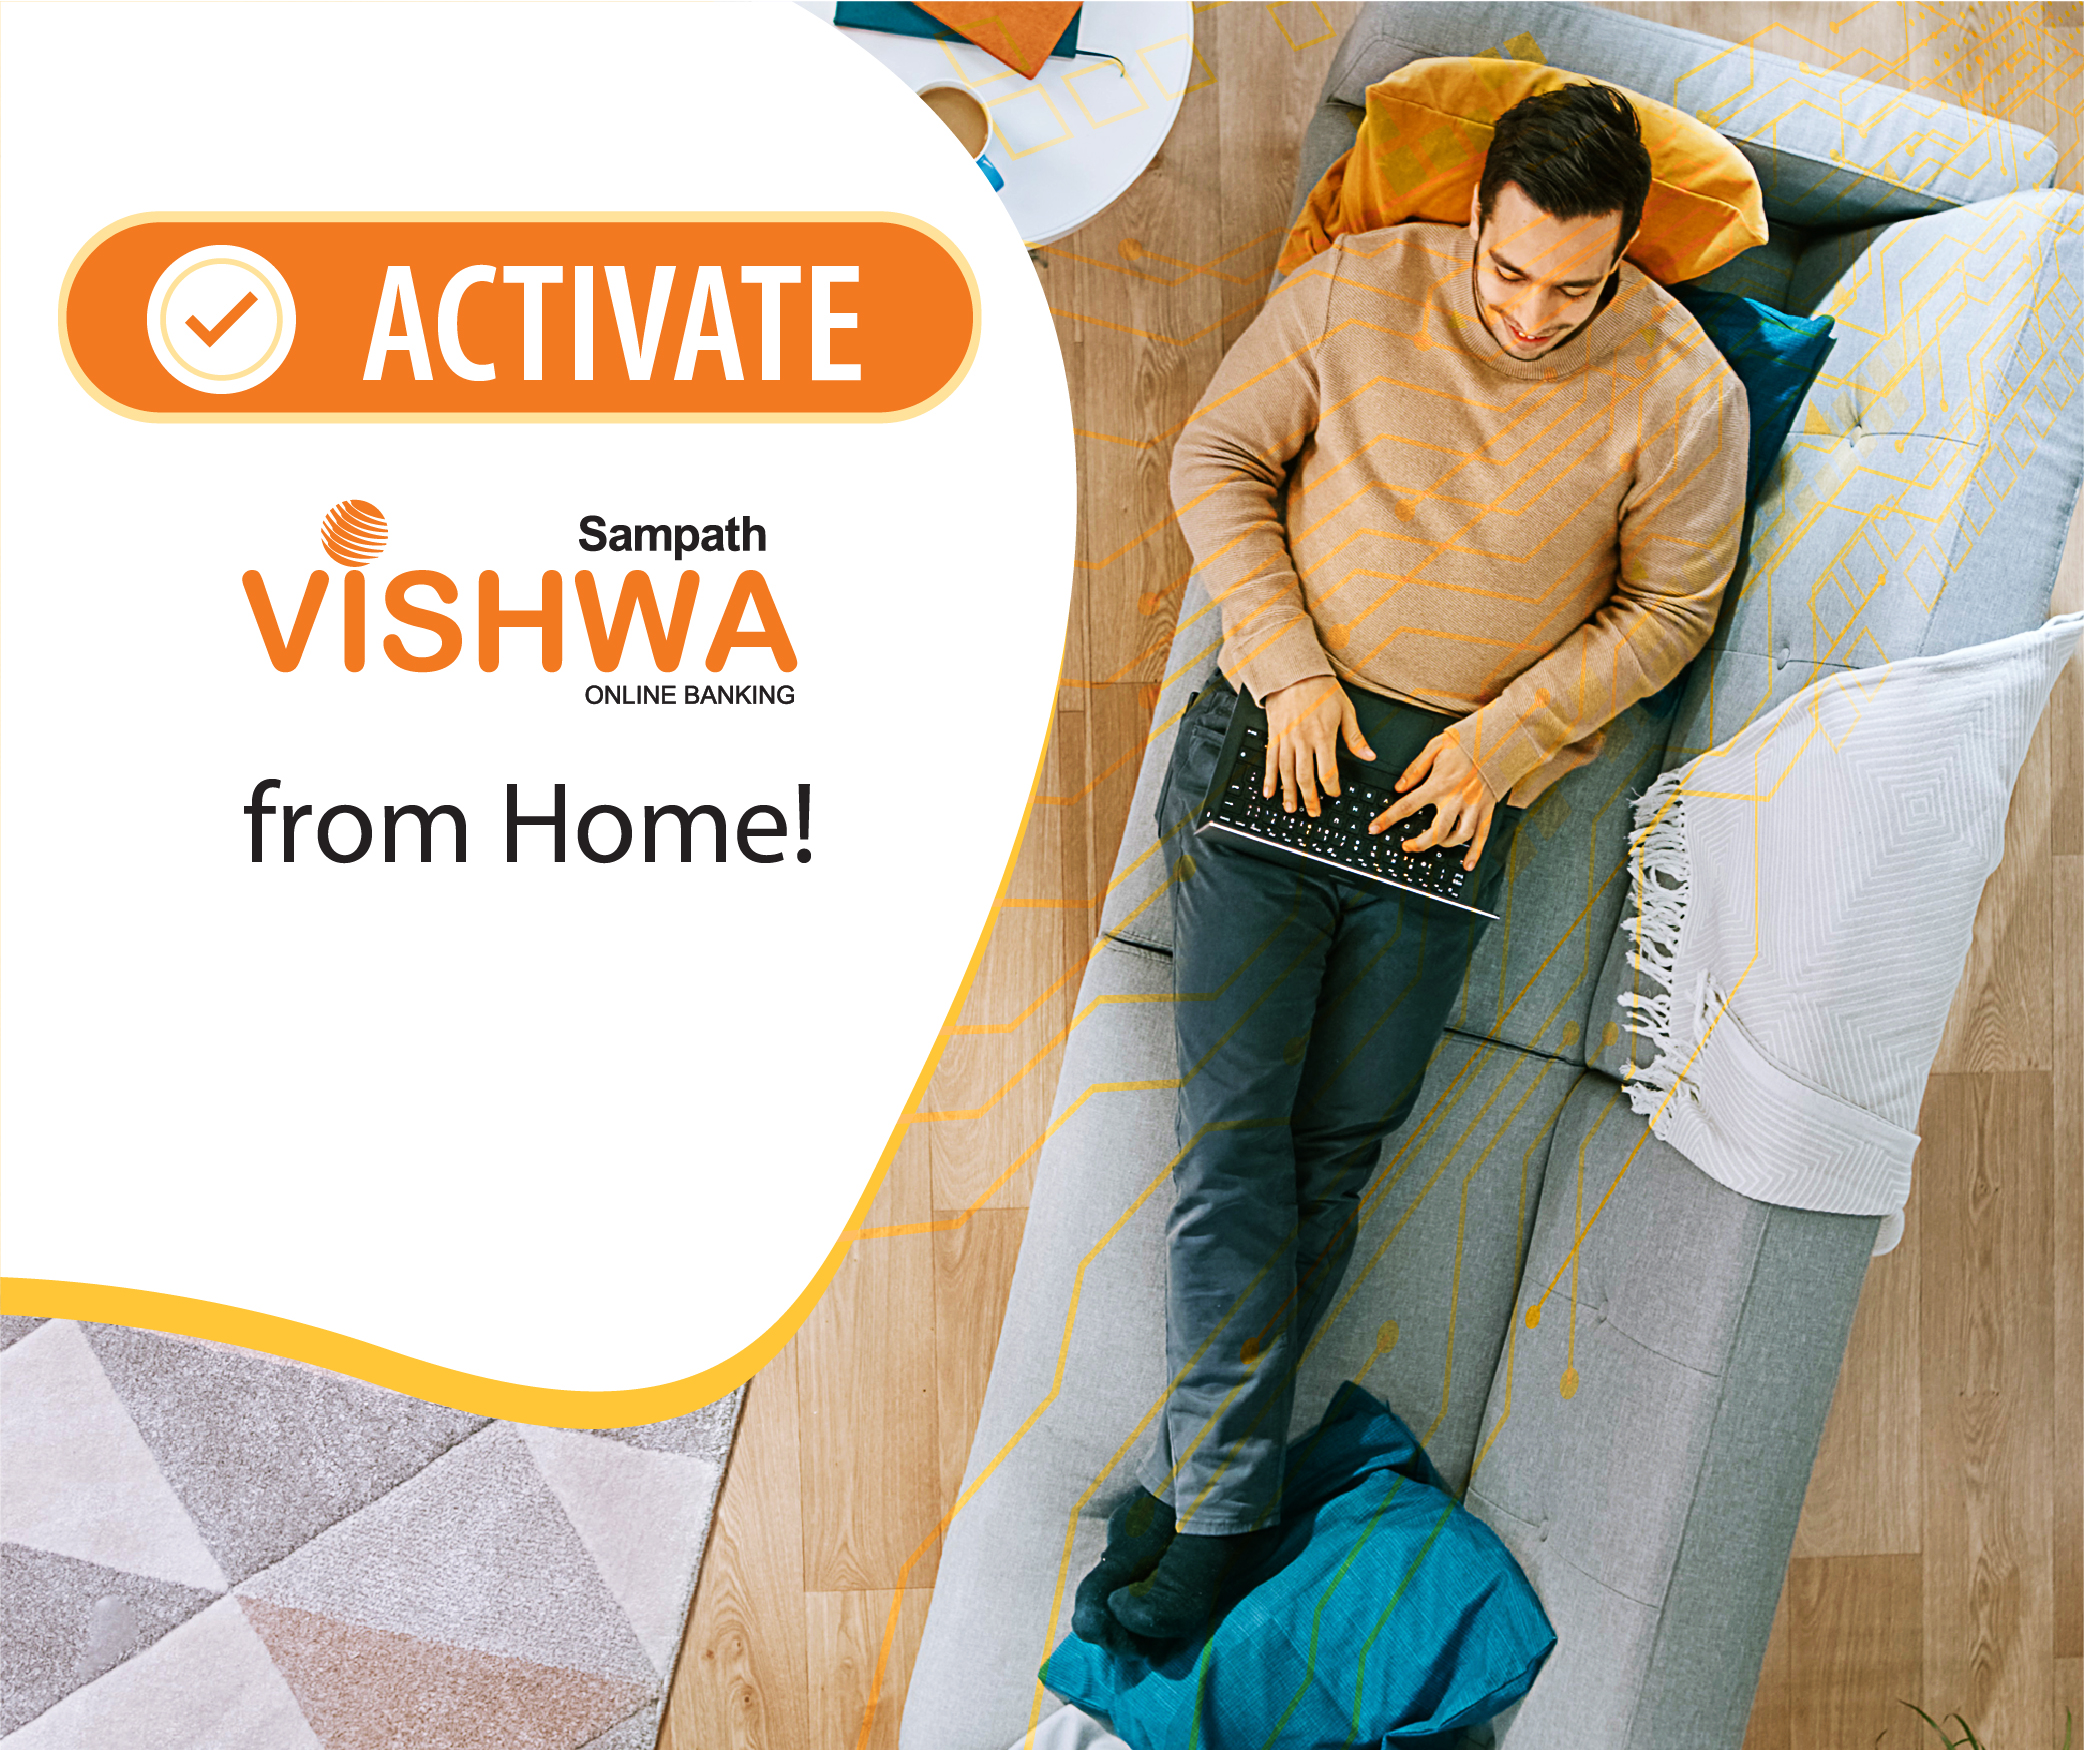 Vishwa Activation from Home